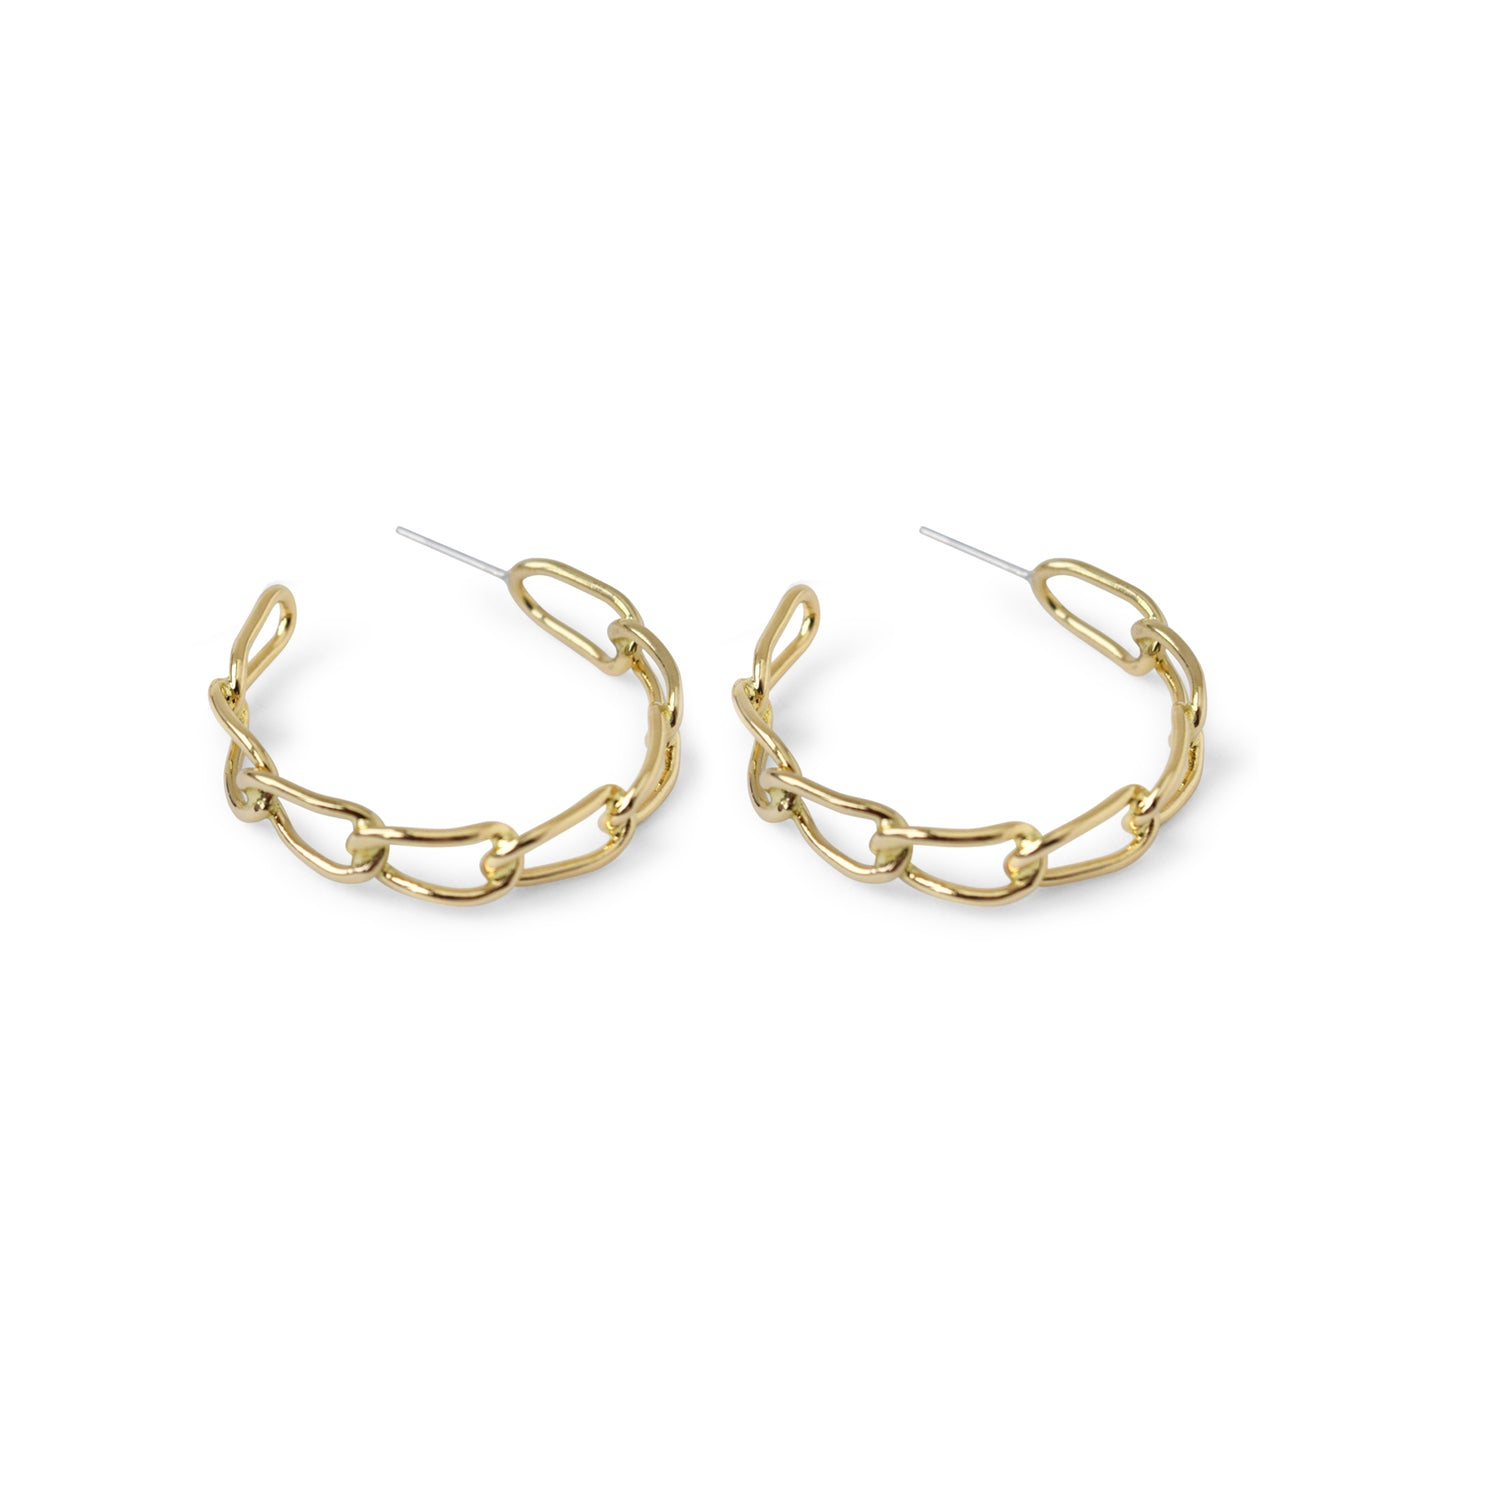 Succession Chainlink Hoop Earrings - Lissa Bowie